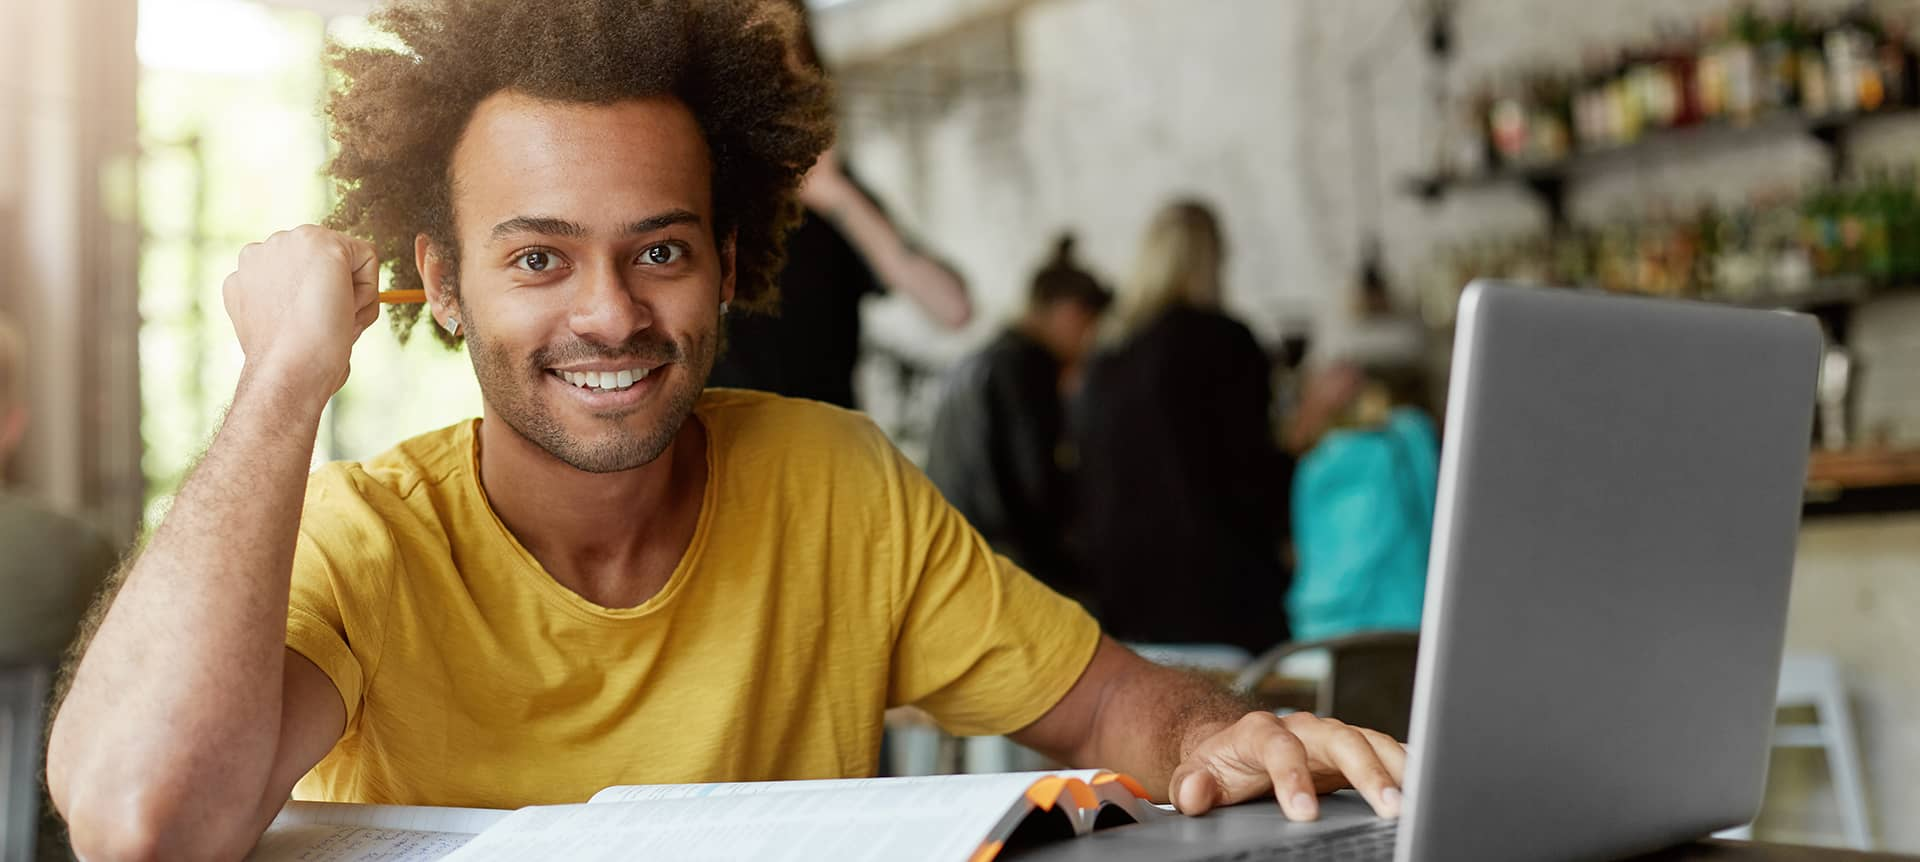 A male applicant, wearing a yellow t-shirt, working on his laptop.